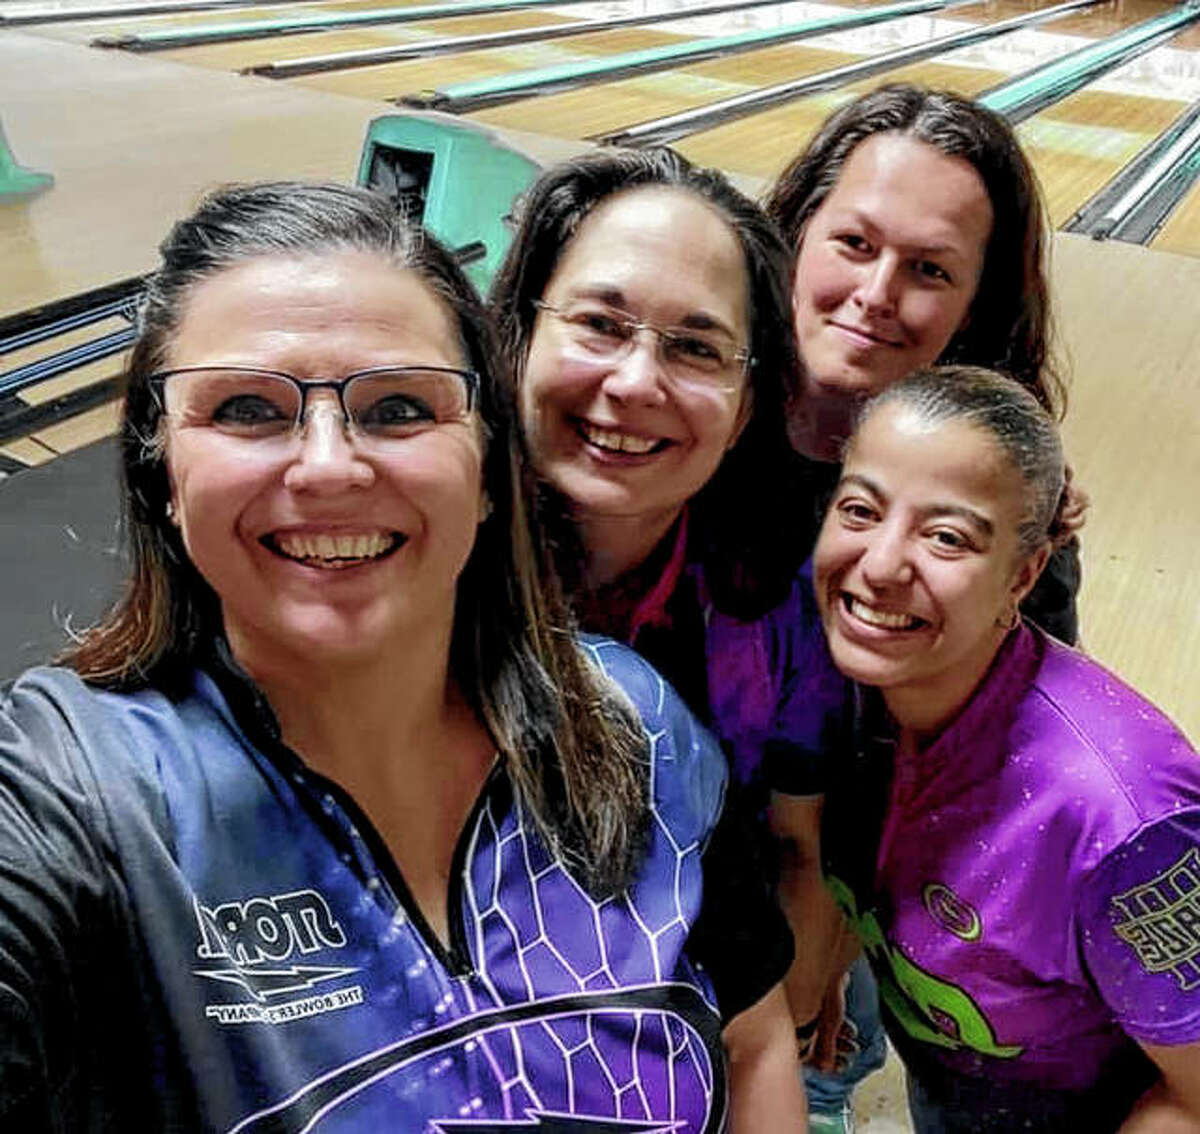 (From left) Tammy Welsh, Lisa Timm, Kala Grigg and Michelle Riley bowled a scratch score of 2,835 to win the scratch division of the Central Illinois Tournament last week.